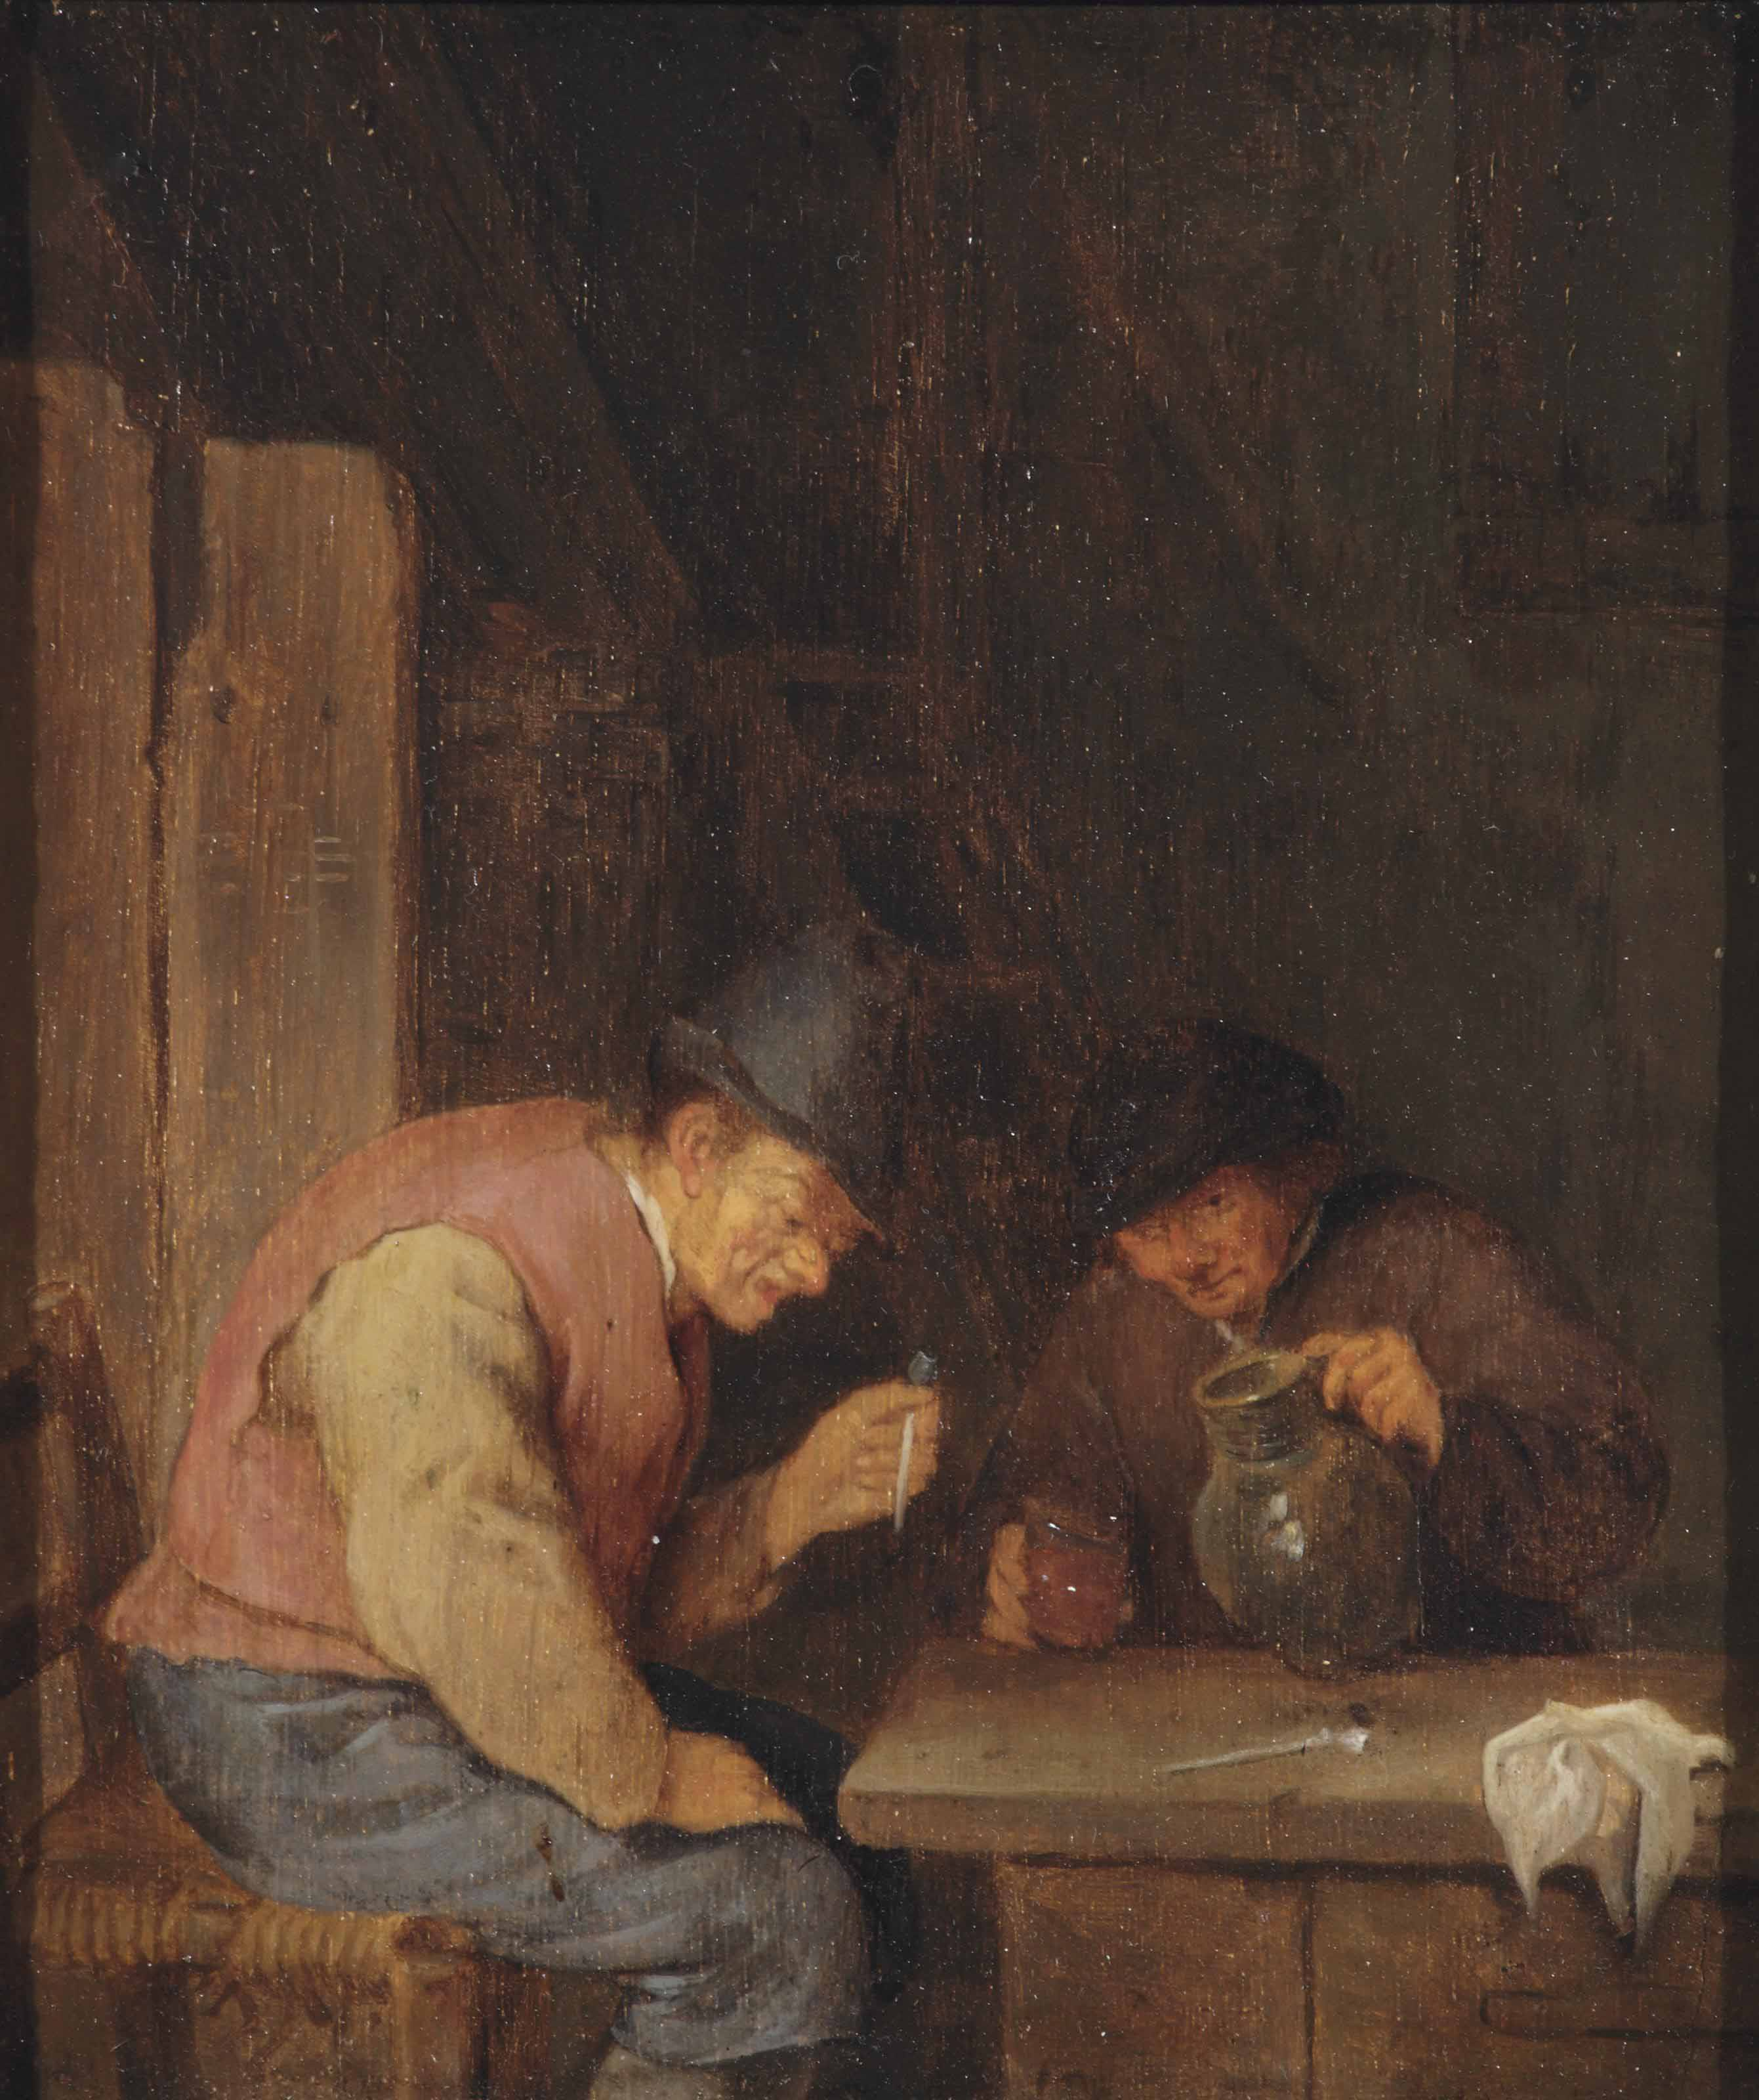 Two peasants smoking in an interior